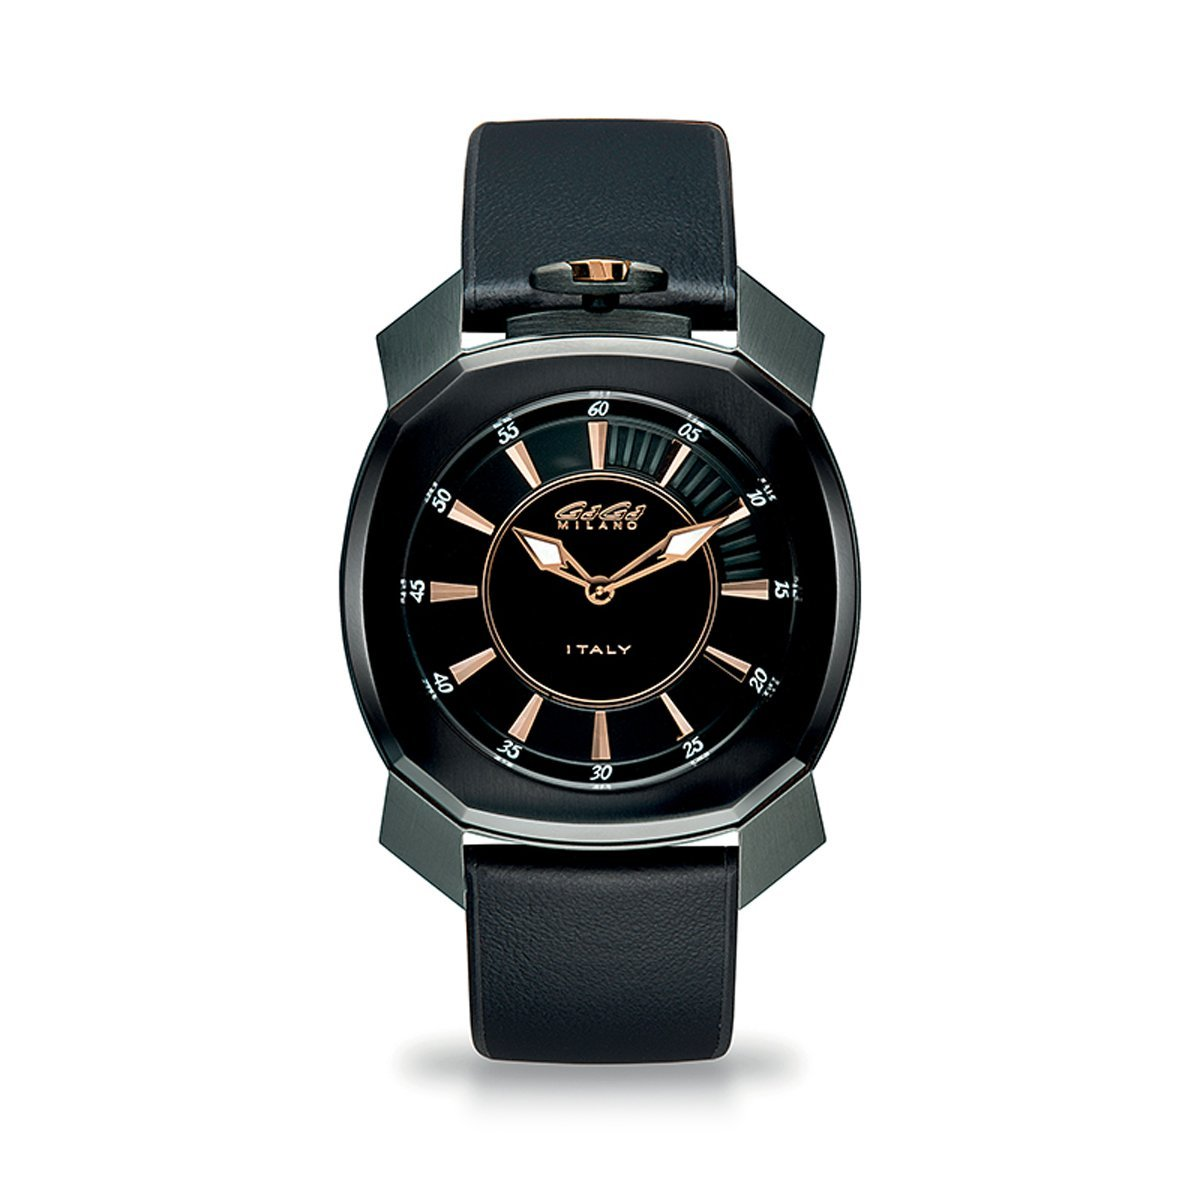 Gaga Milano Frame_One Black PVD - Watches & Crystals